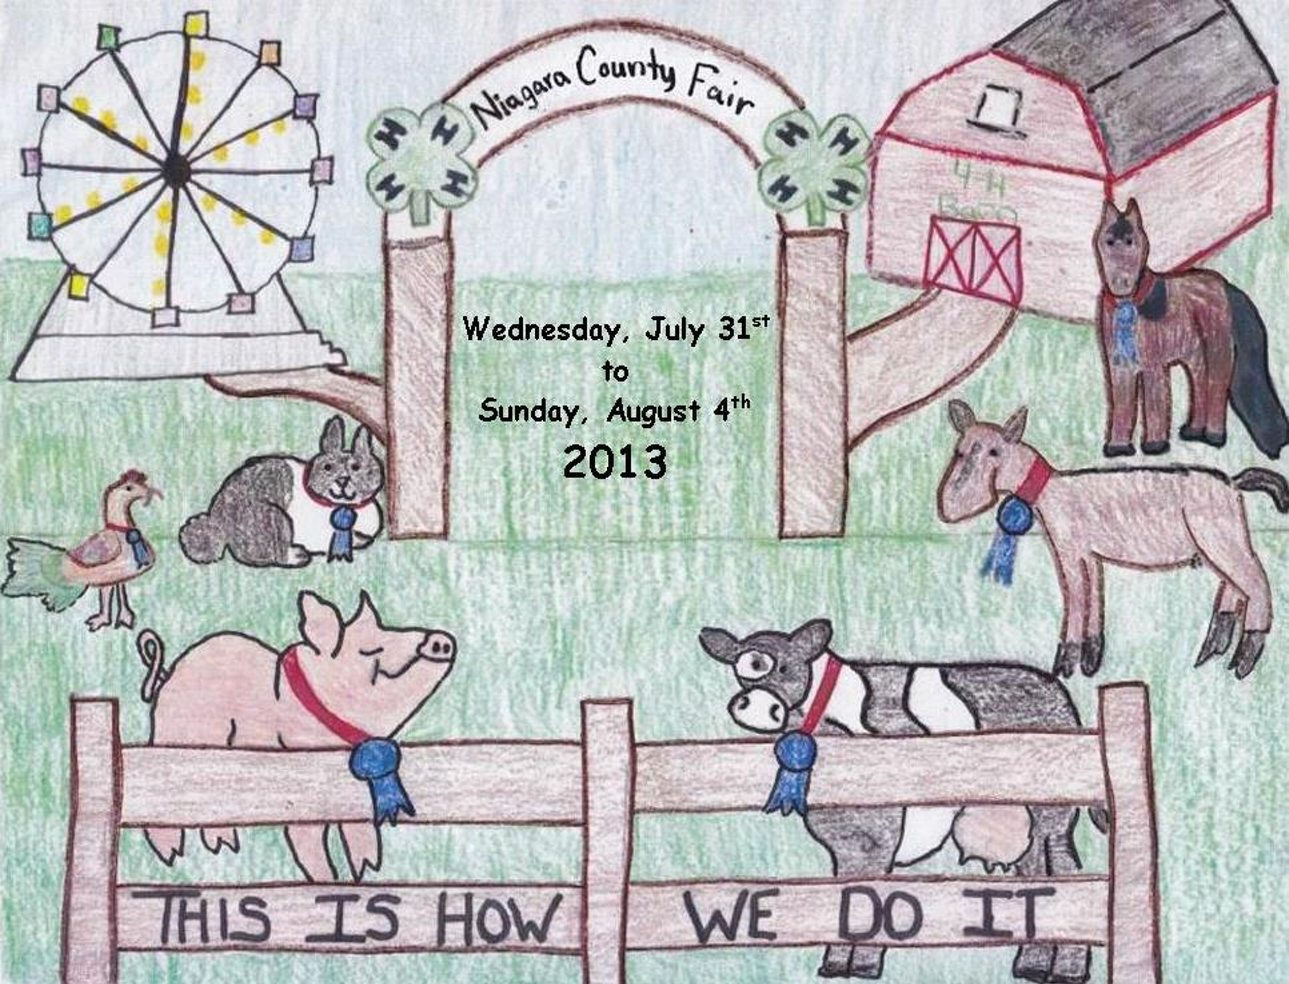 This is the winning logo for the 2013 Niagara County Fair as designed by 11-year-old Samantha Chilcott, of Lockport, an active 4-H member. She is a sixth-grade student at Emmet Belknap Middle School.